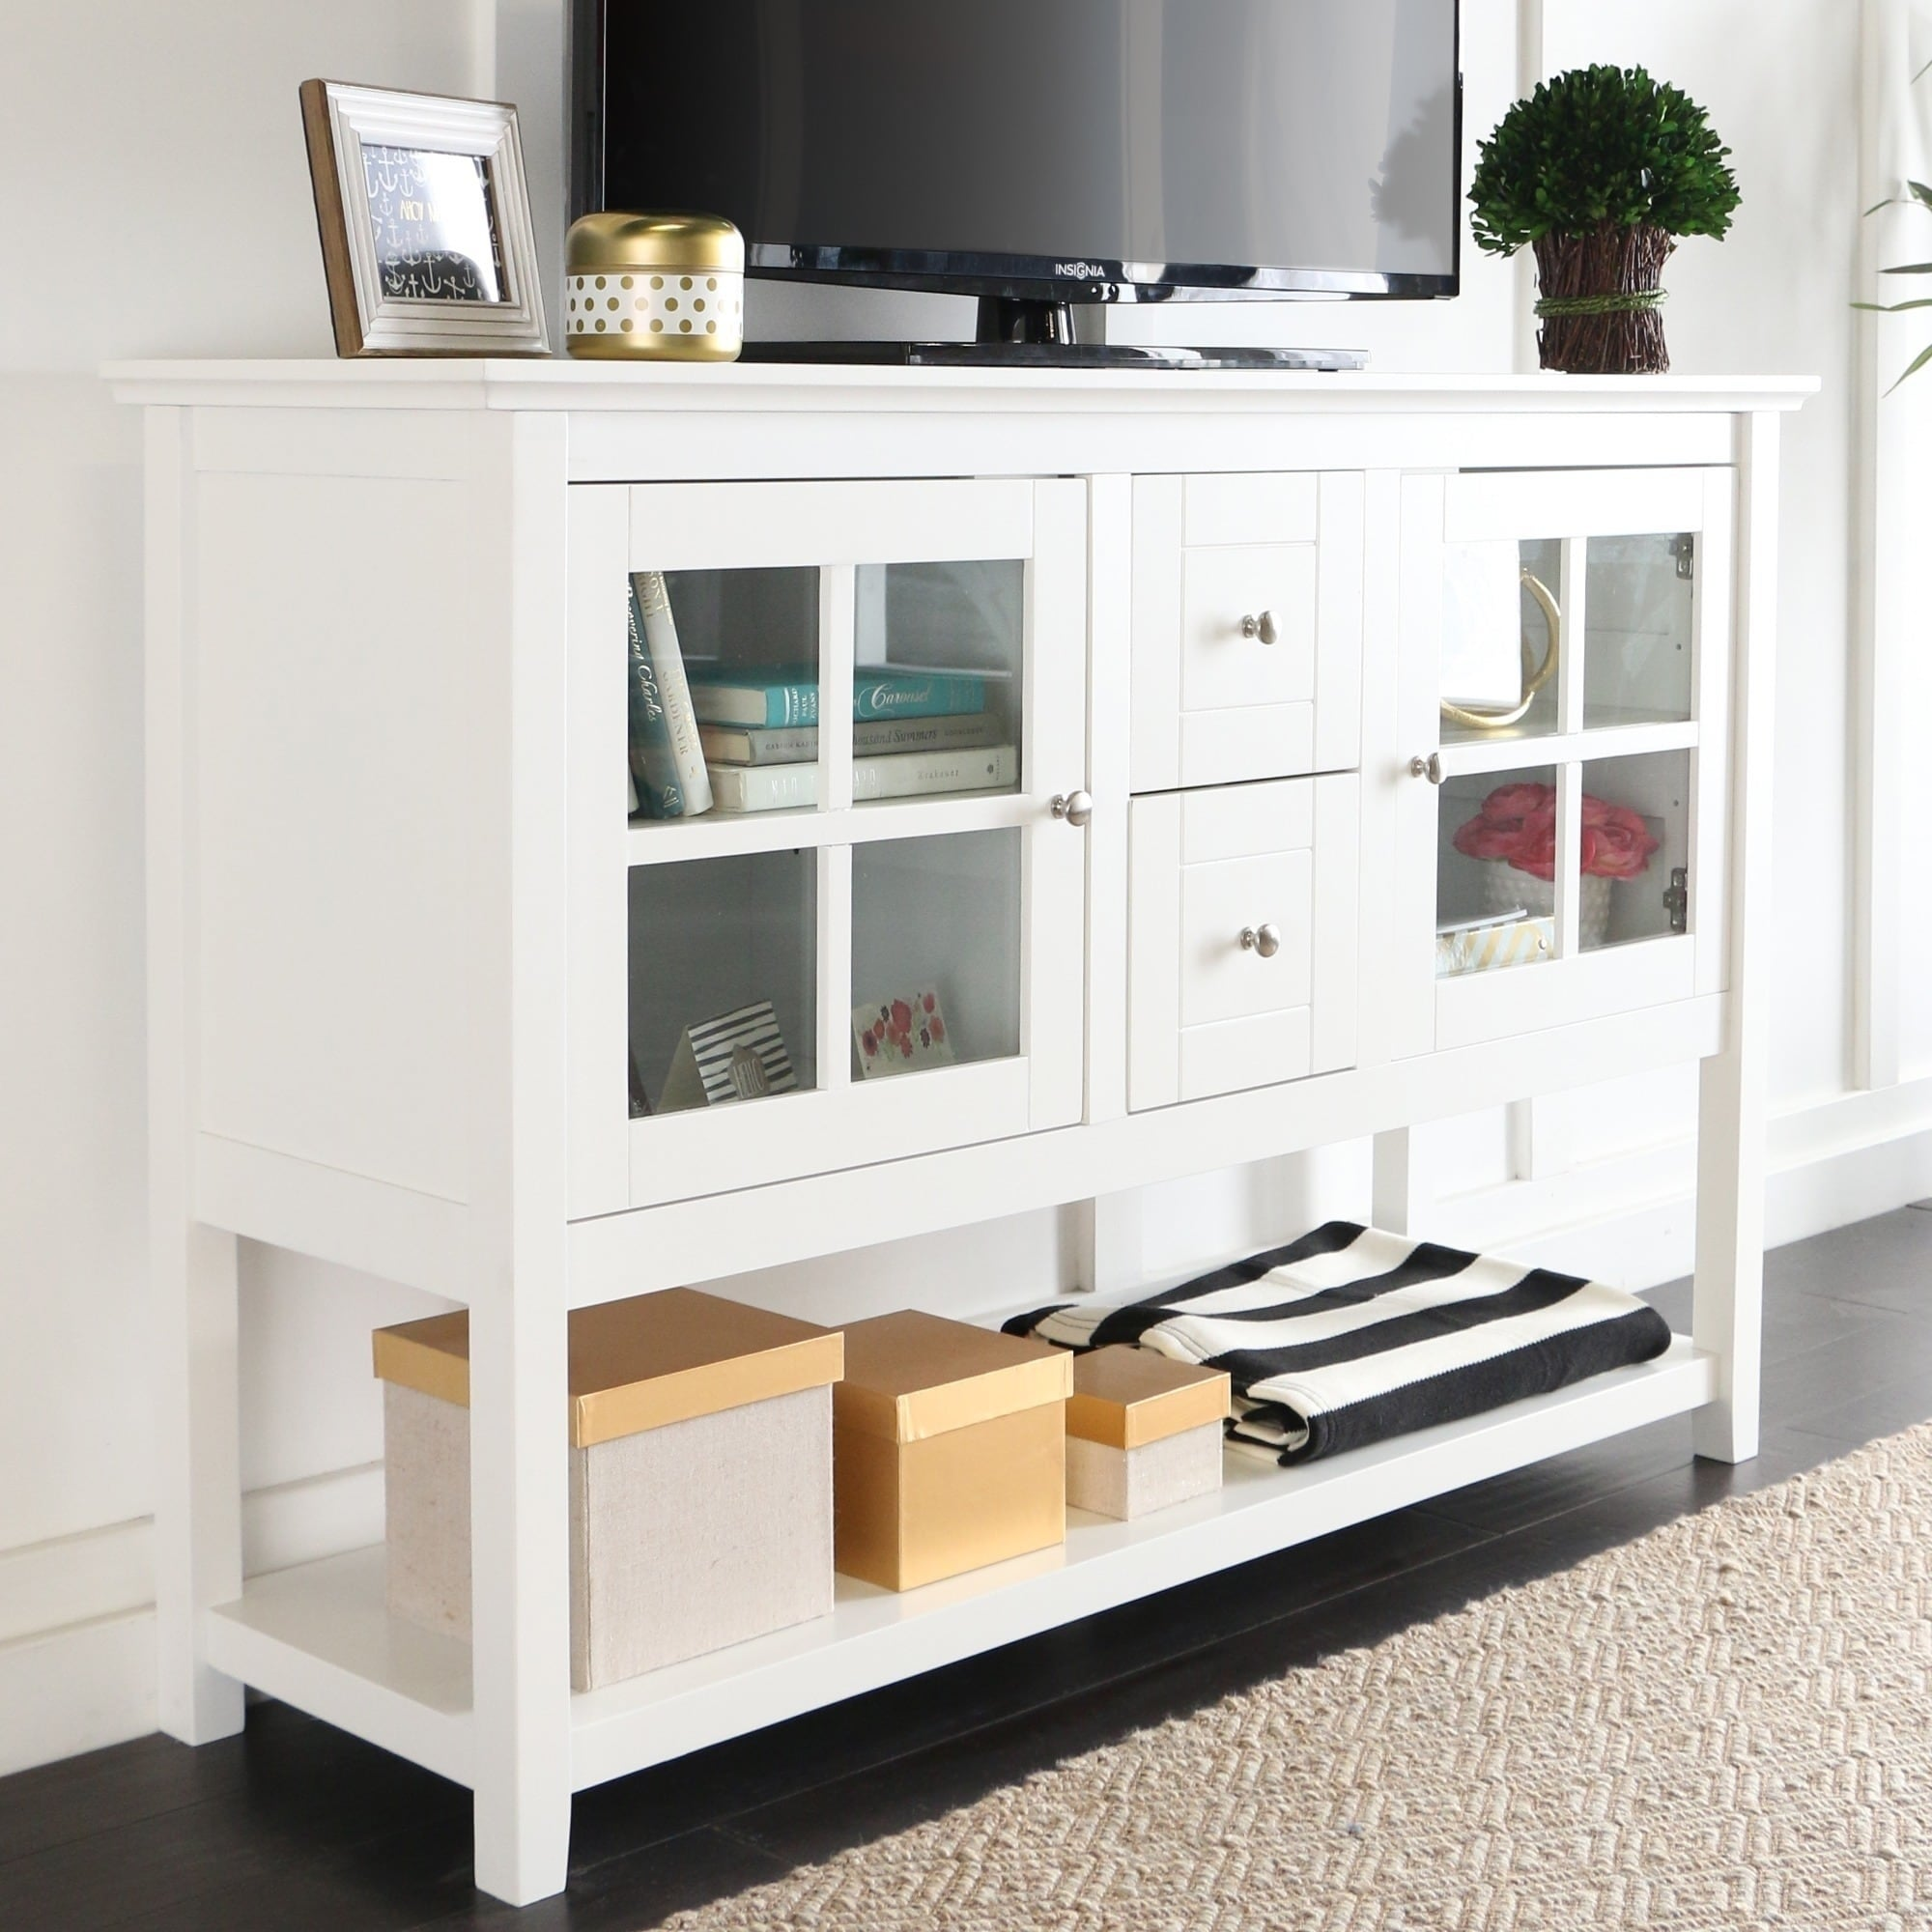 52 Tv Console Buffet Cabinet White X 16 35h Free Shipping Today 10309752